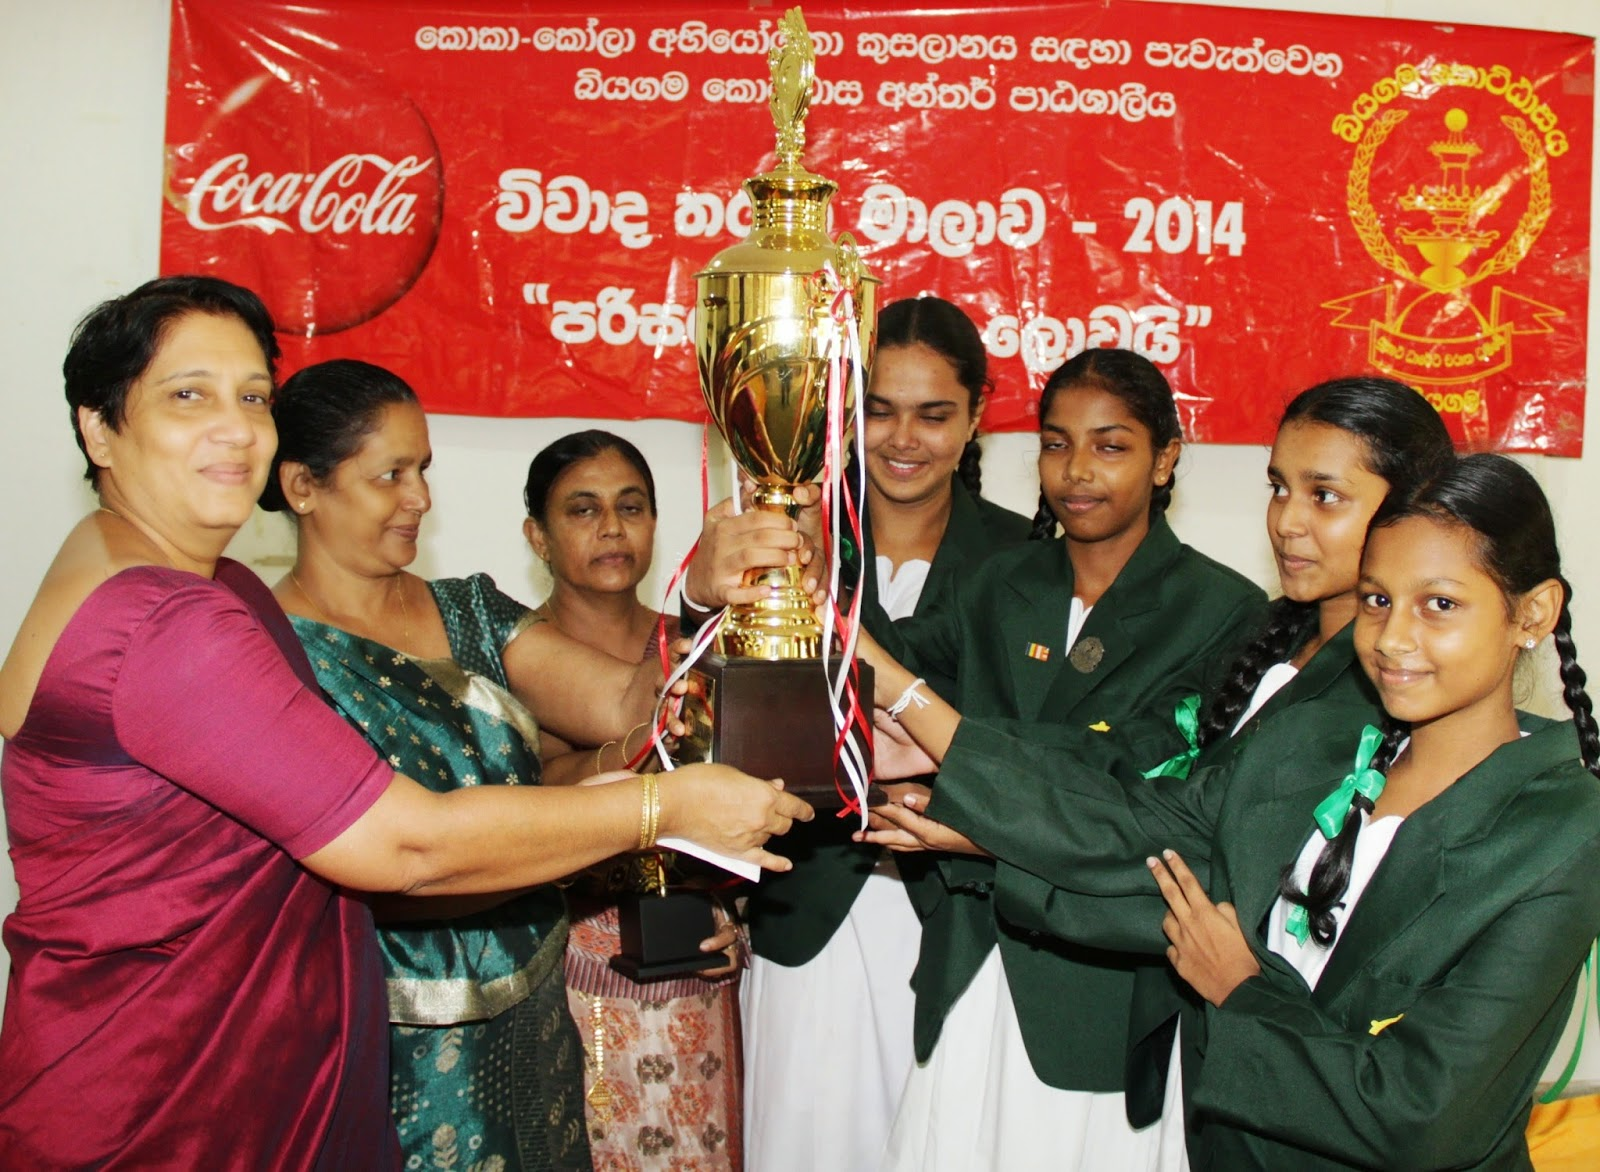 Nilanthi Jayatillake, Country HR Manager, Coca-Cola Beverages Sri Lanka Ltd presenting the trophy to the students of the winning team, Visaka Balika Vidyalaya.